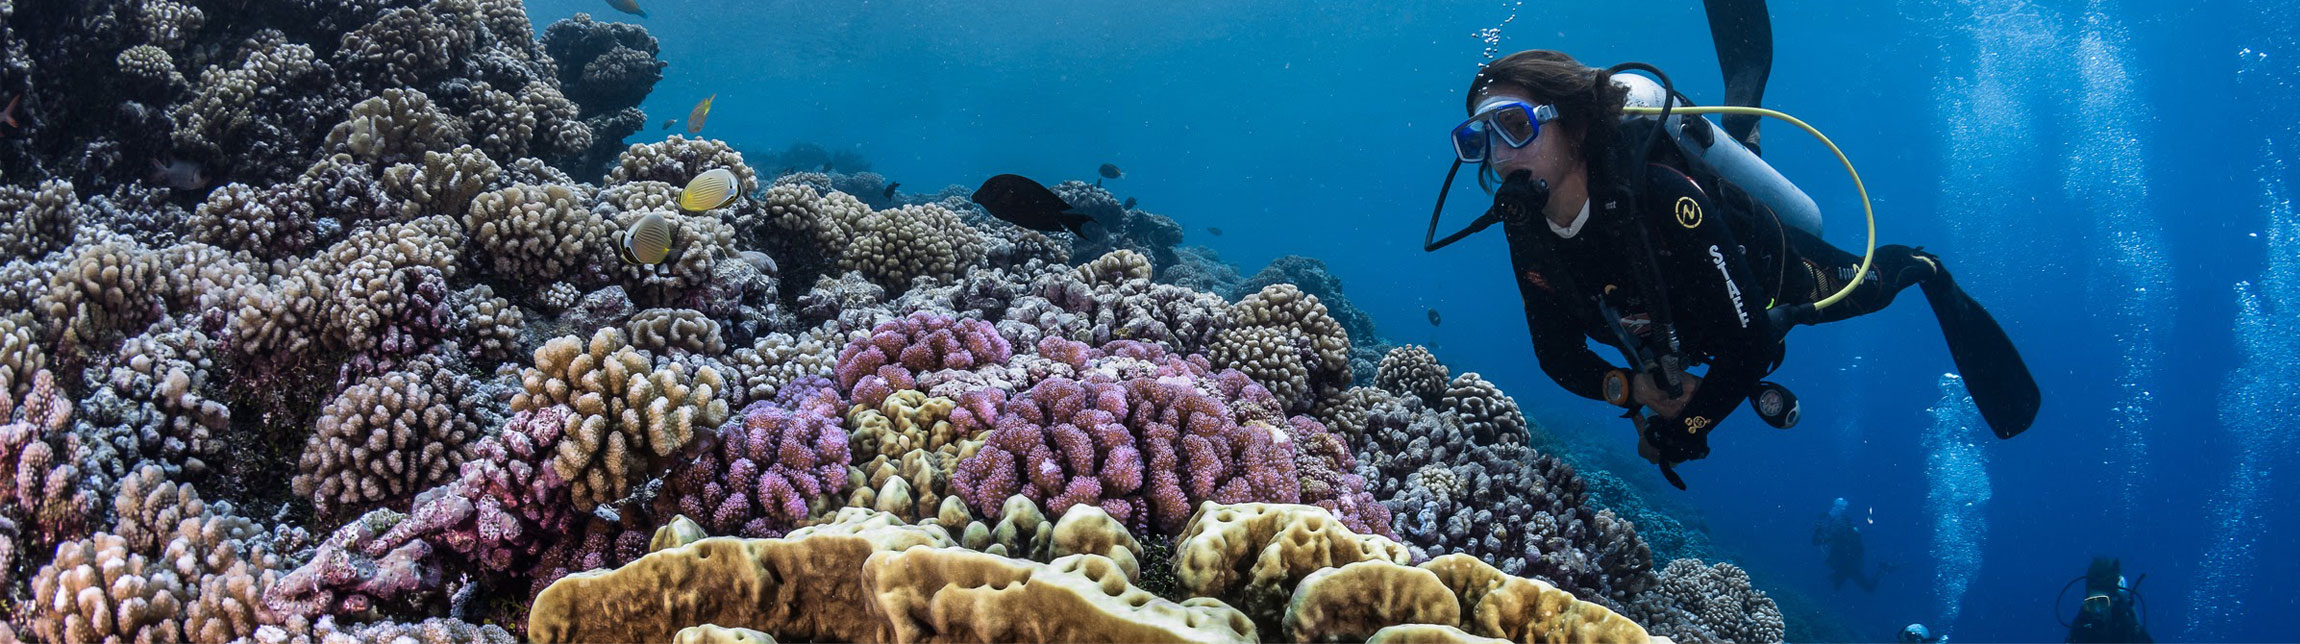 Book the dives in Polynesia with Topdive